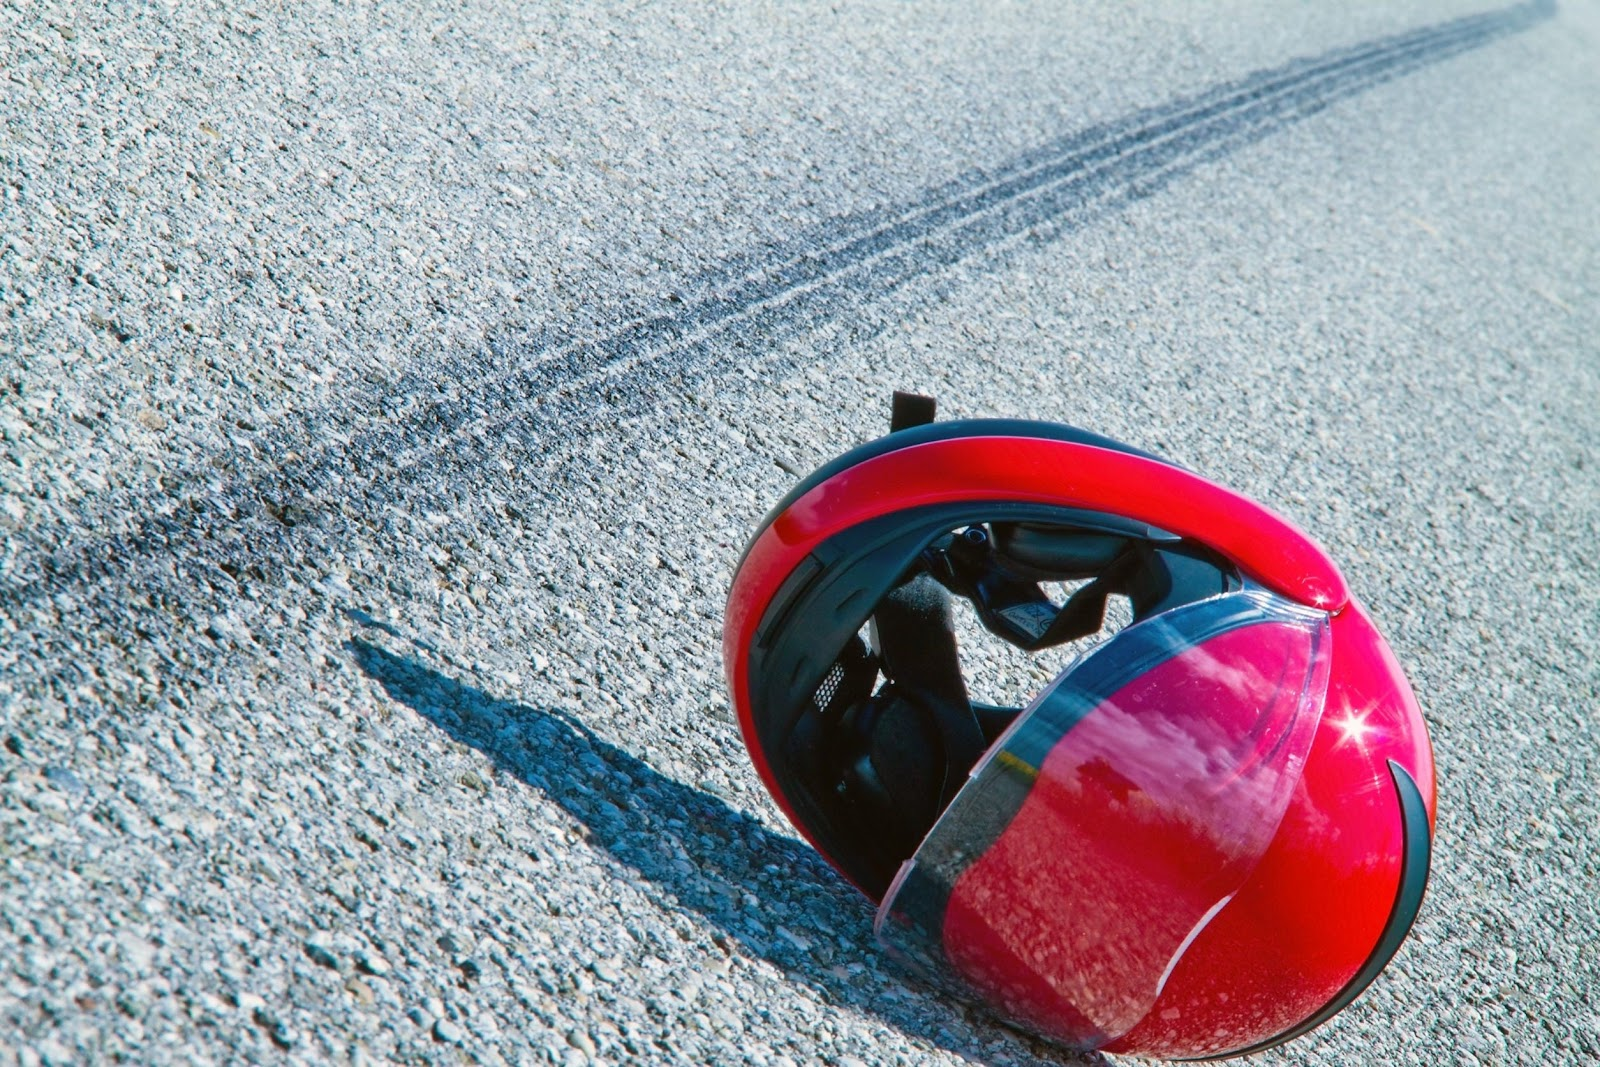 Why Motorcycles Accidents Are More Dangerous Than Car Accidents